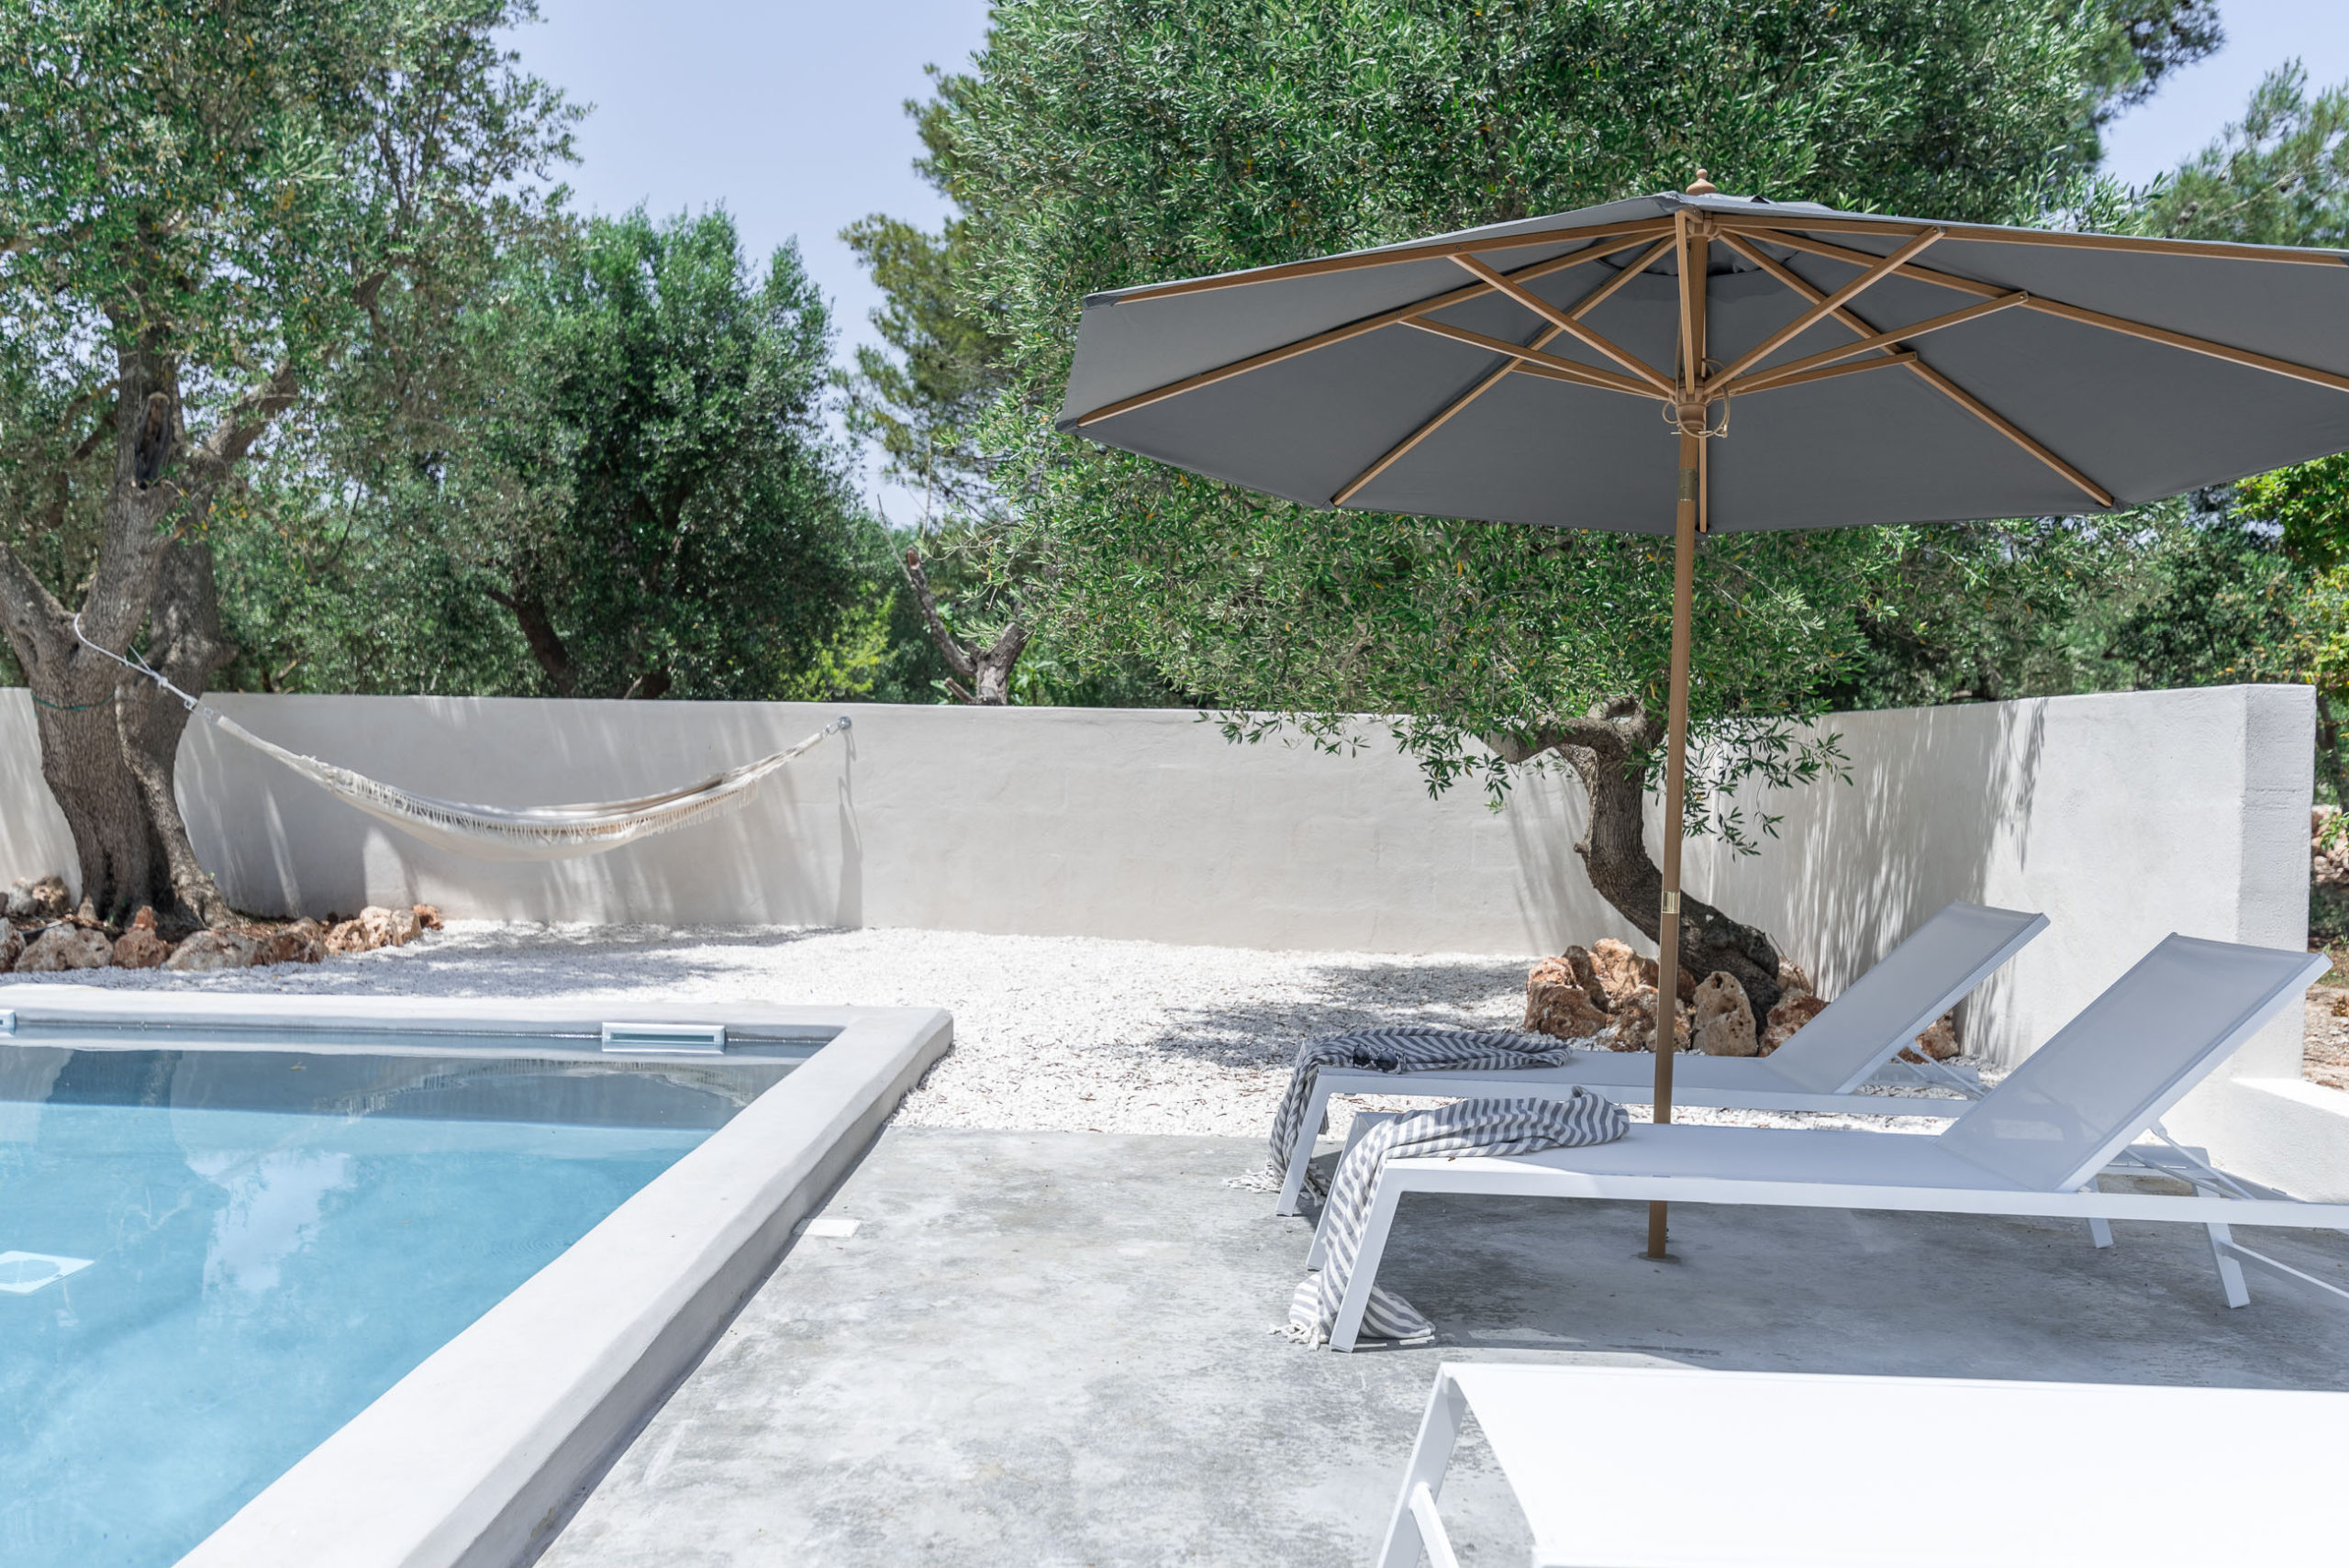 Villa Puglia is a modern holiday home for sale in the Puglian countryside